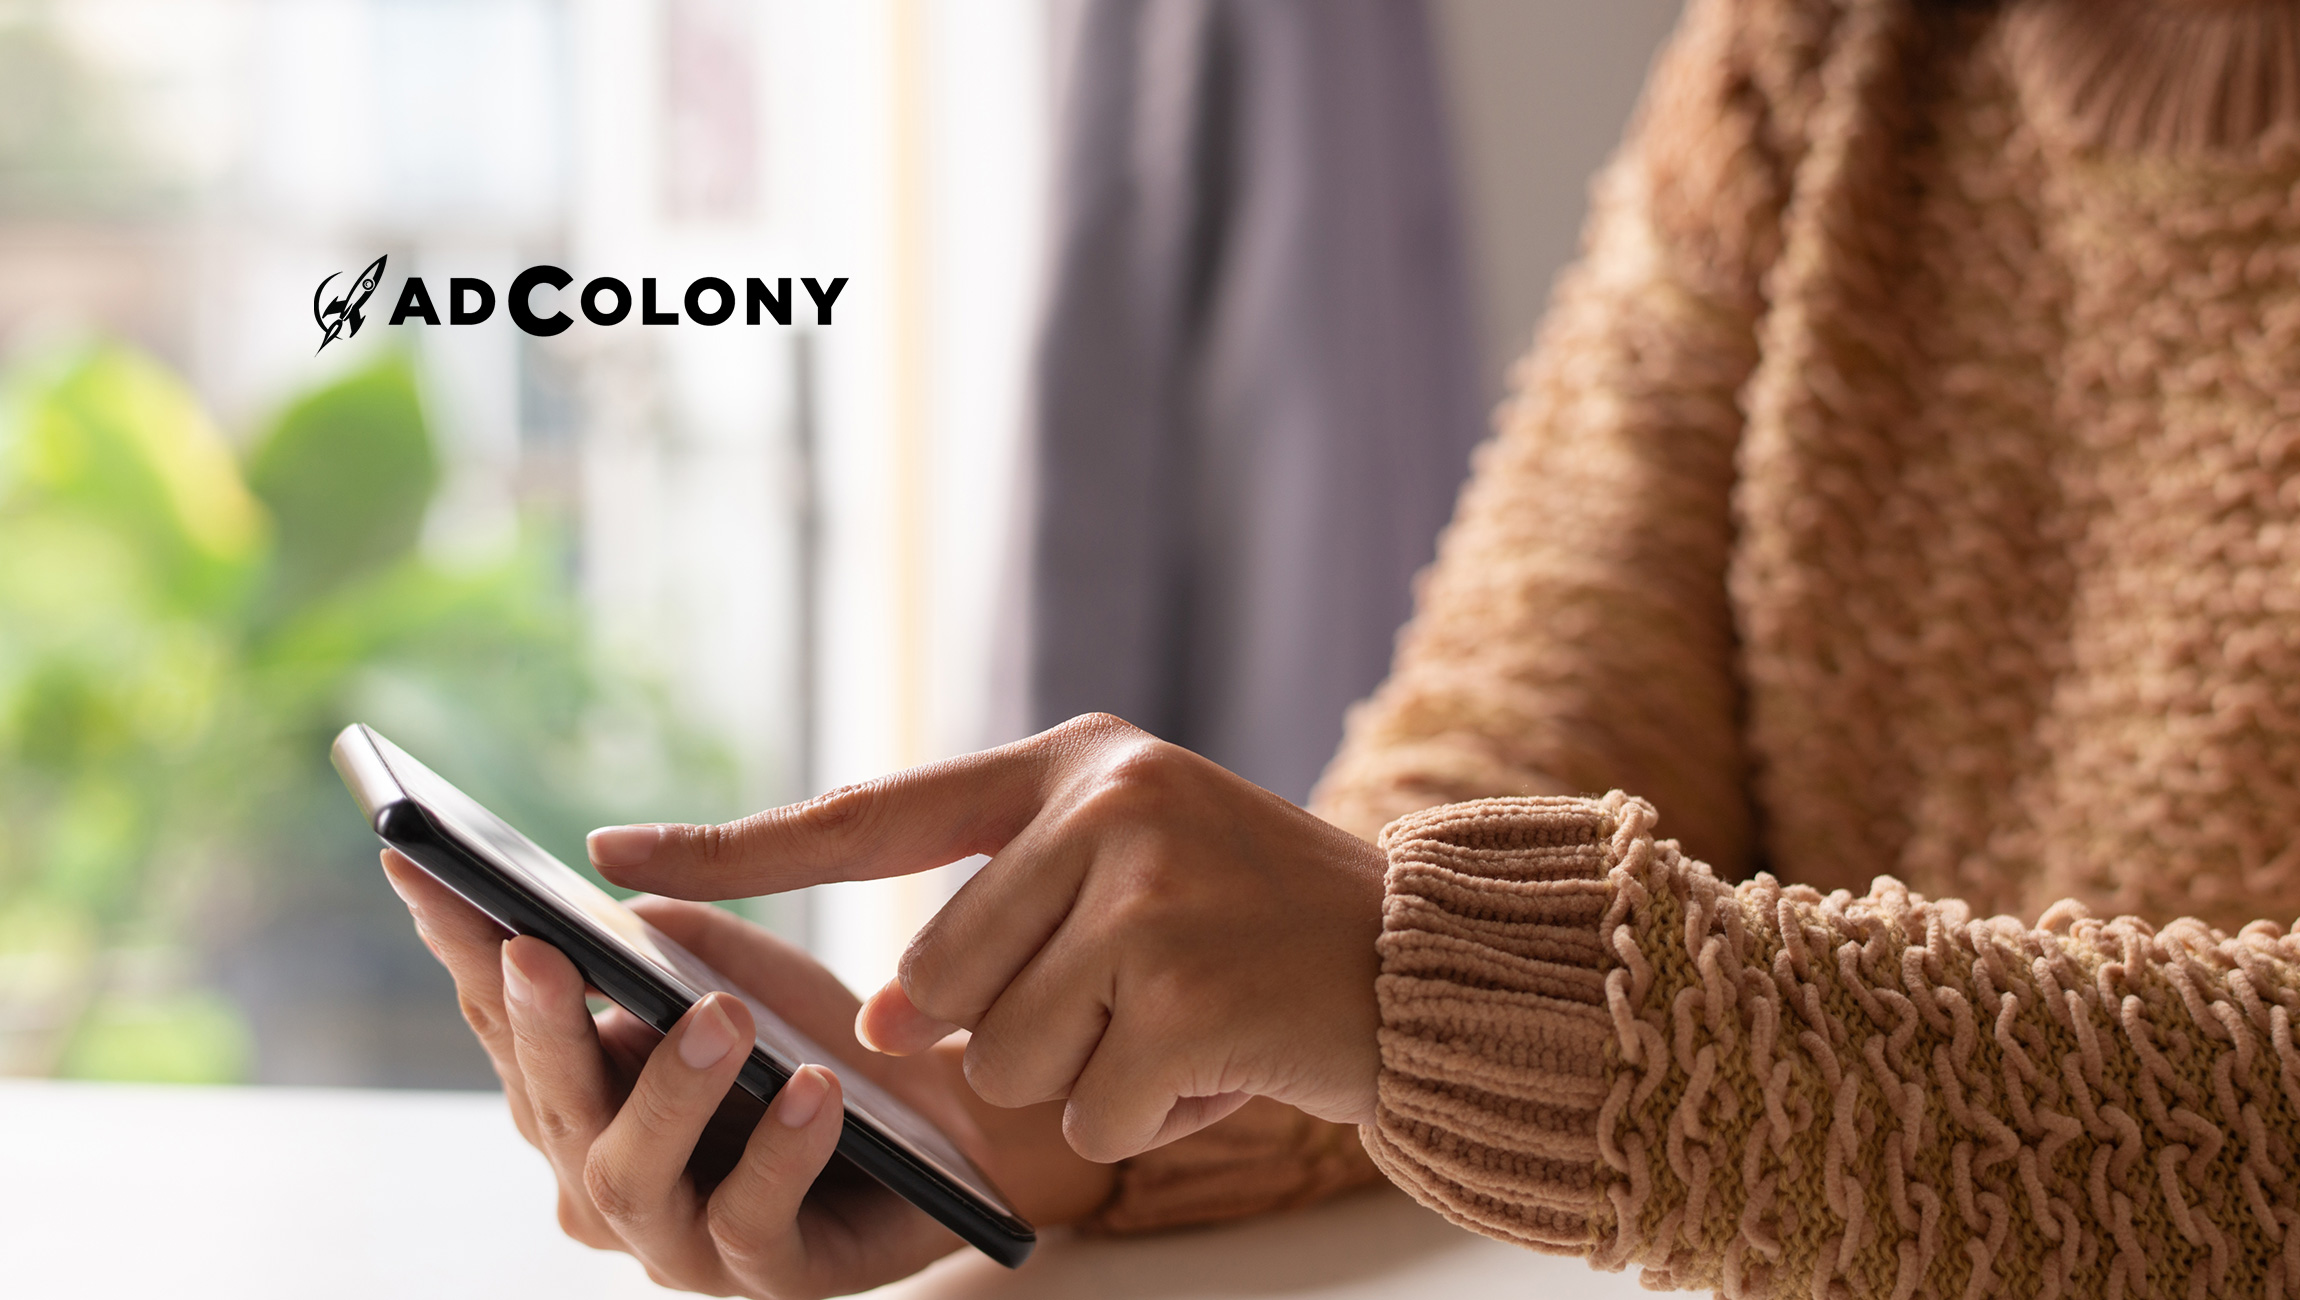 AdColony Boosts Executive Leadership Team with Internal Promotions Following Strong 1H 2020 Results